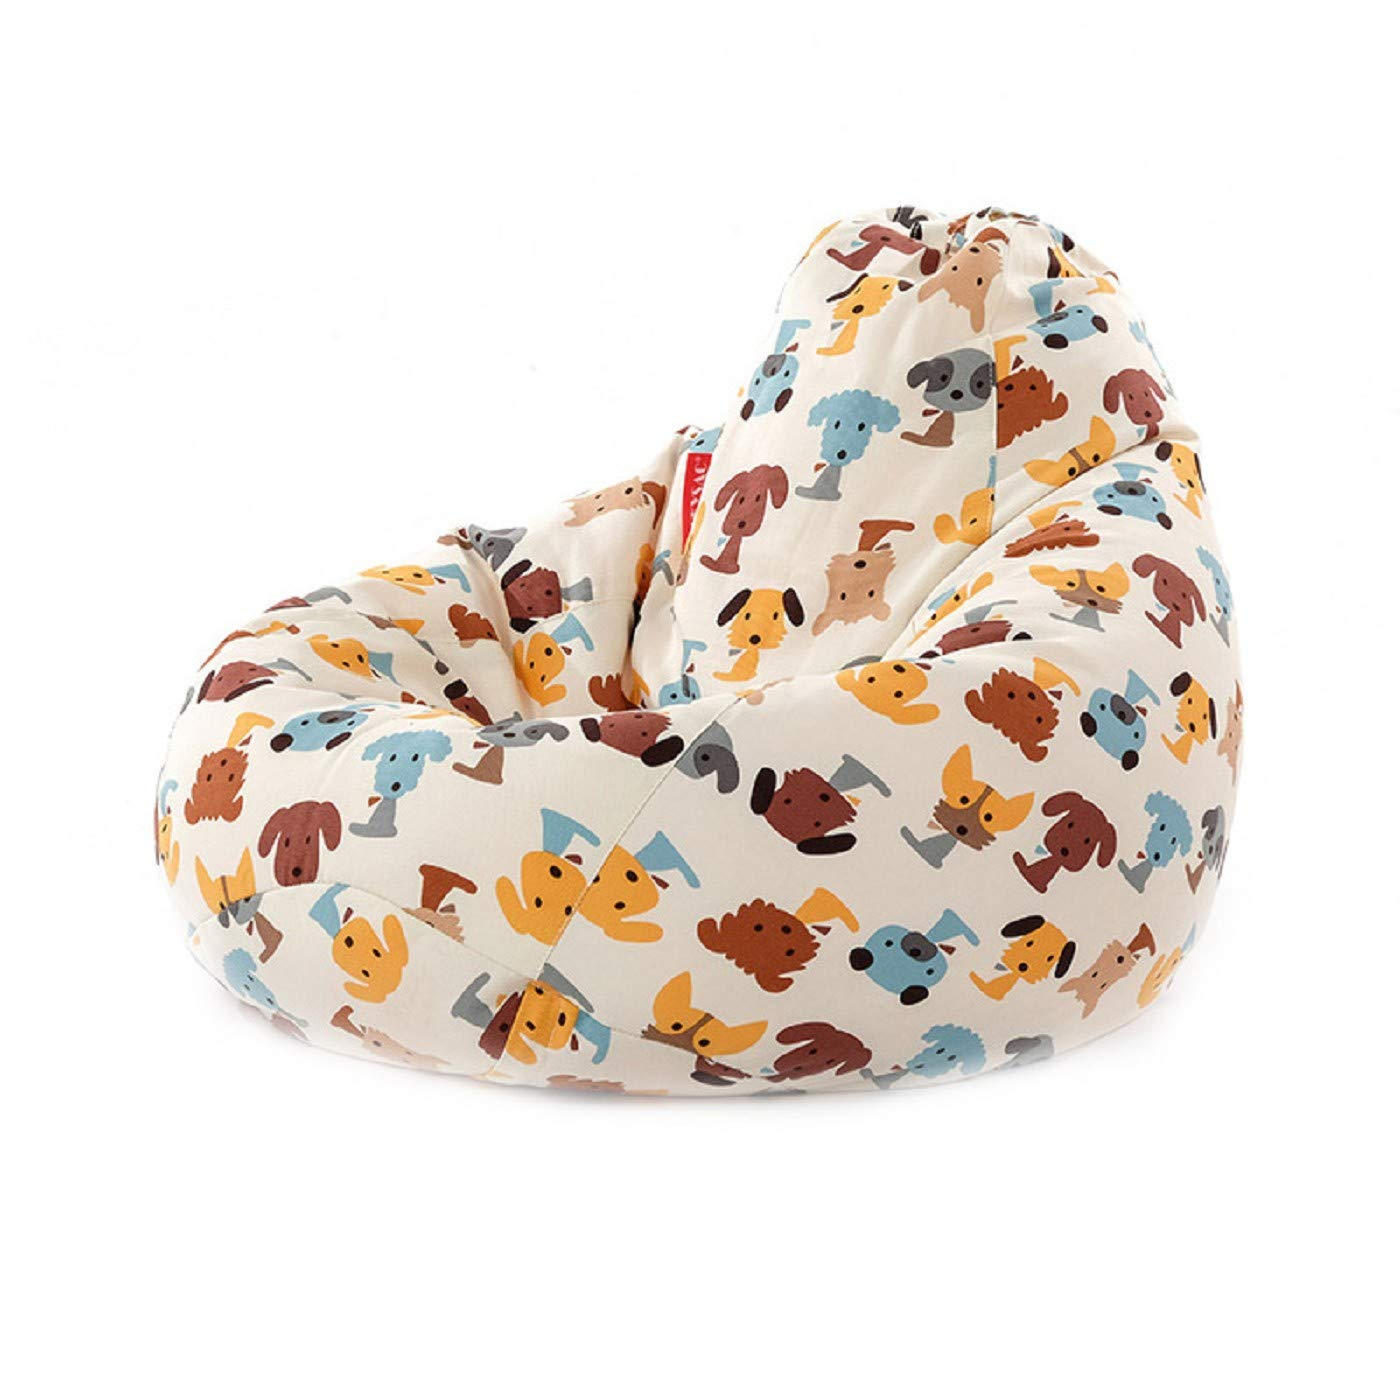 MZS Tec Bean Bag Chair Cover, Kids' Stuffed Animal Storage Bags Coat Colorful Cotton Toy Organizer Bean Bag Coat (Pattern A)